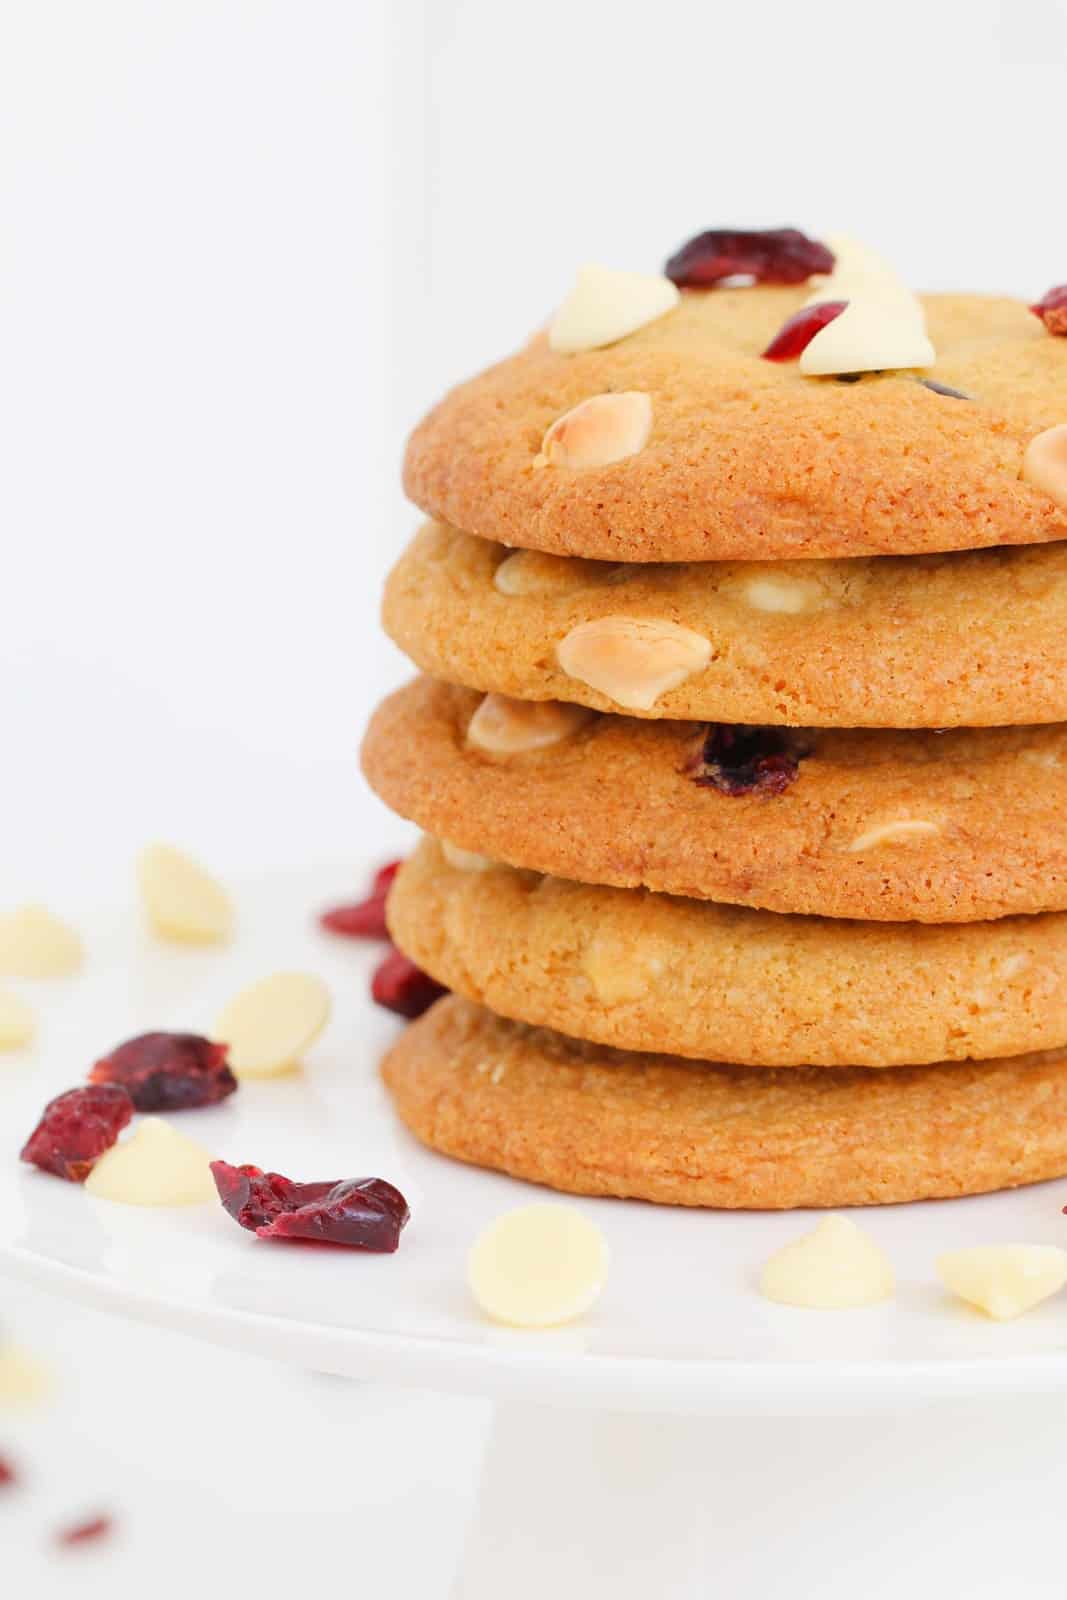 Five cookies stacked on a white cake stand surrounded by white chocolate chips and cranberries.